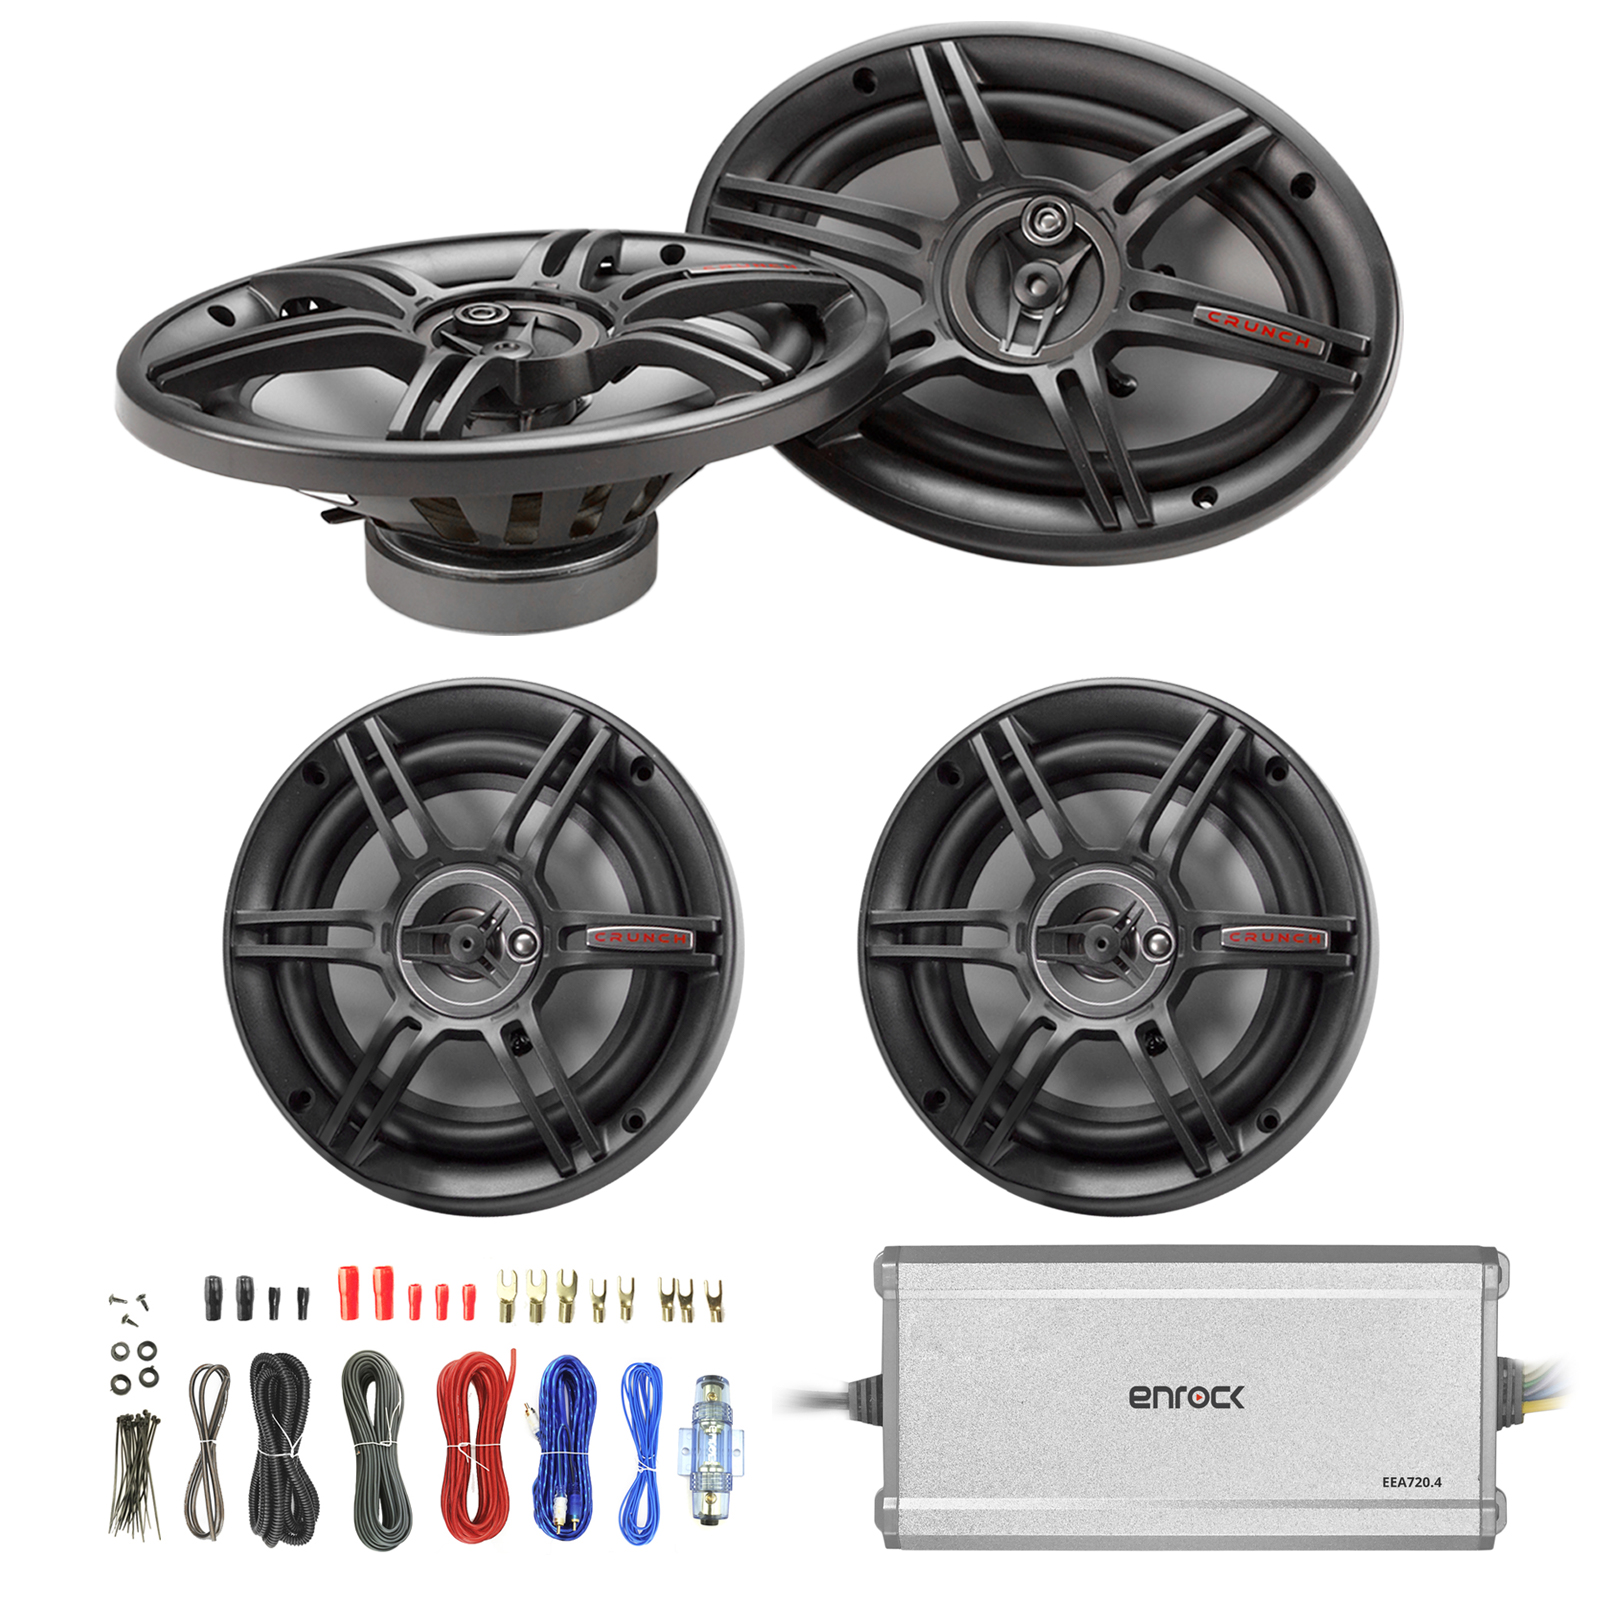 "Crunch 6.5"" 3-Way Black Car Speakers (Pair), Crunch 6x9"" 3-Way Car Black Speakers (Pair), Enrock Marine/Outdoor 4-Channel Marine Amplifier, Enrock Audio 18 AWG Gauge 50 Feet Speaker Wire Cable"